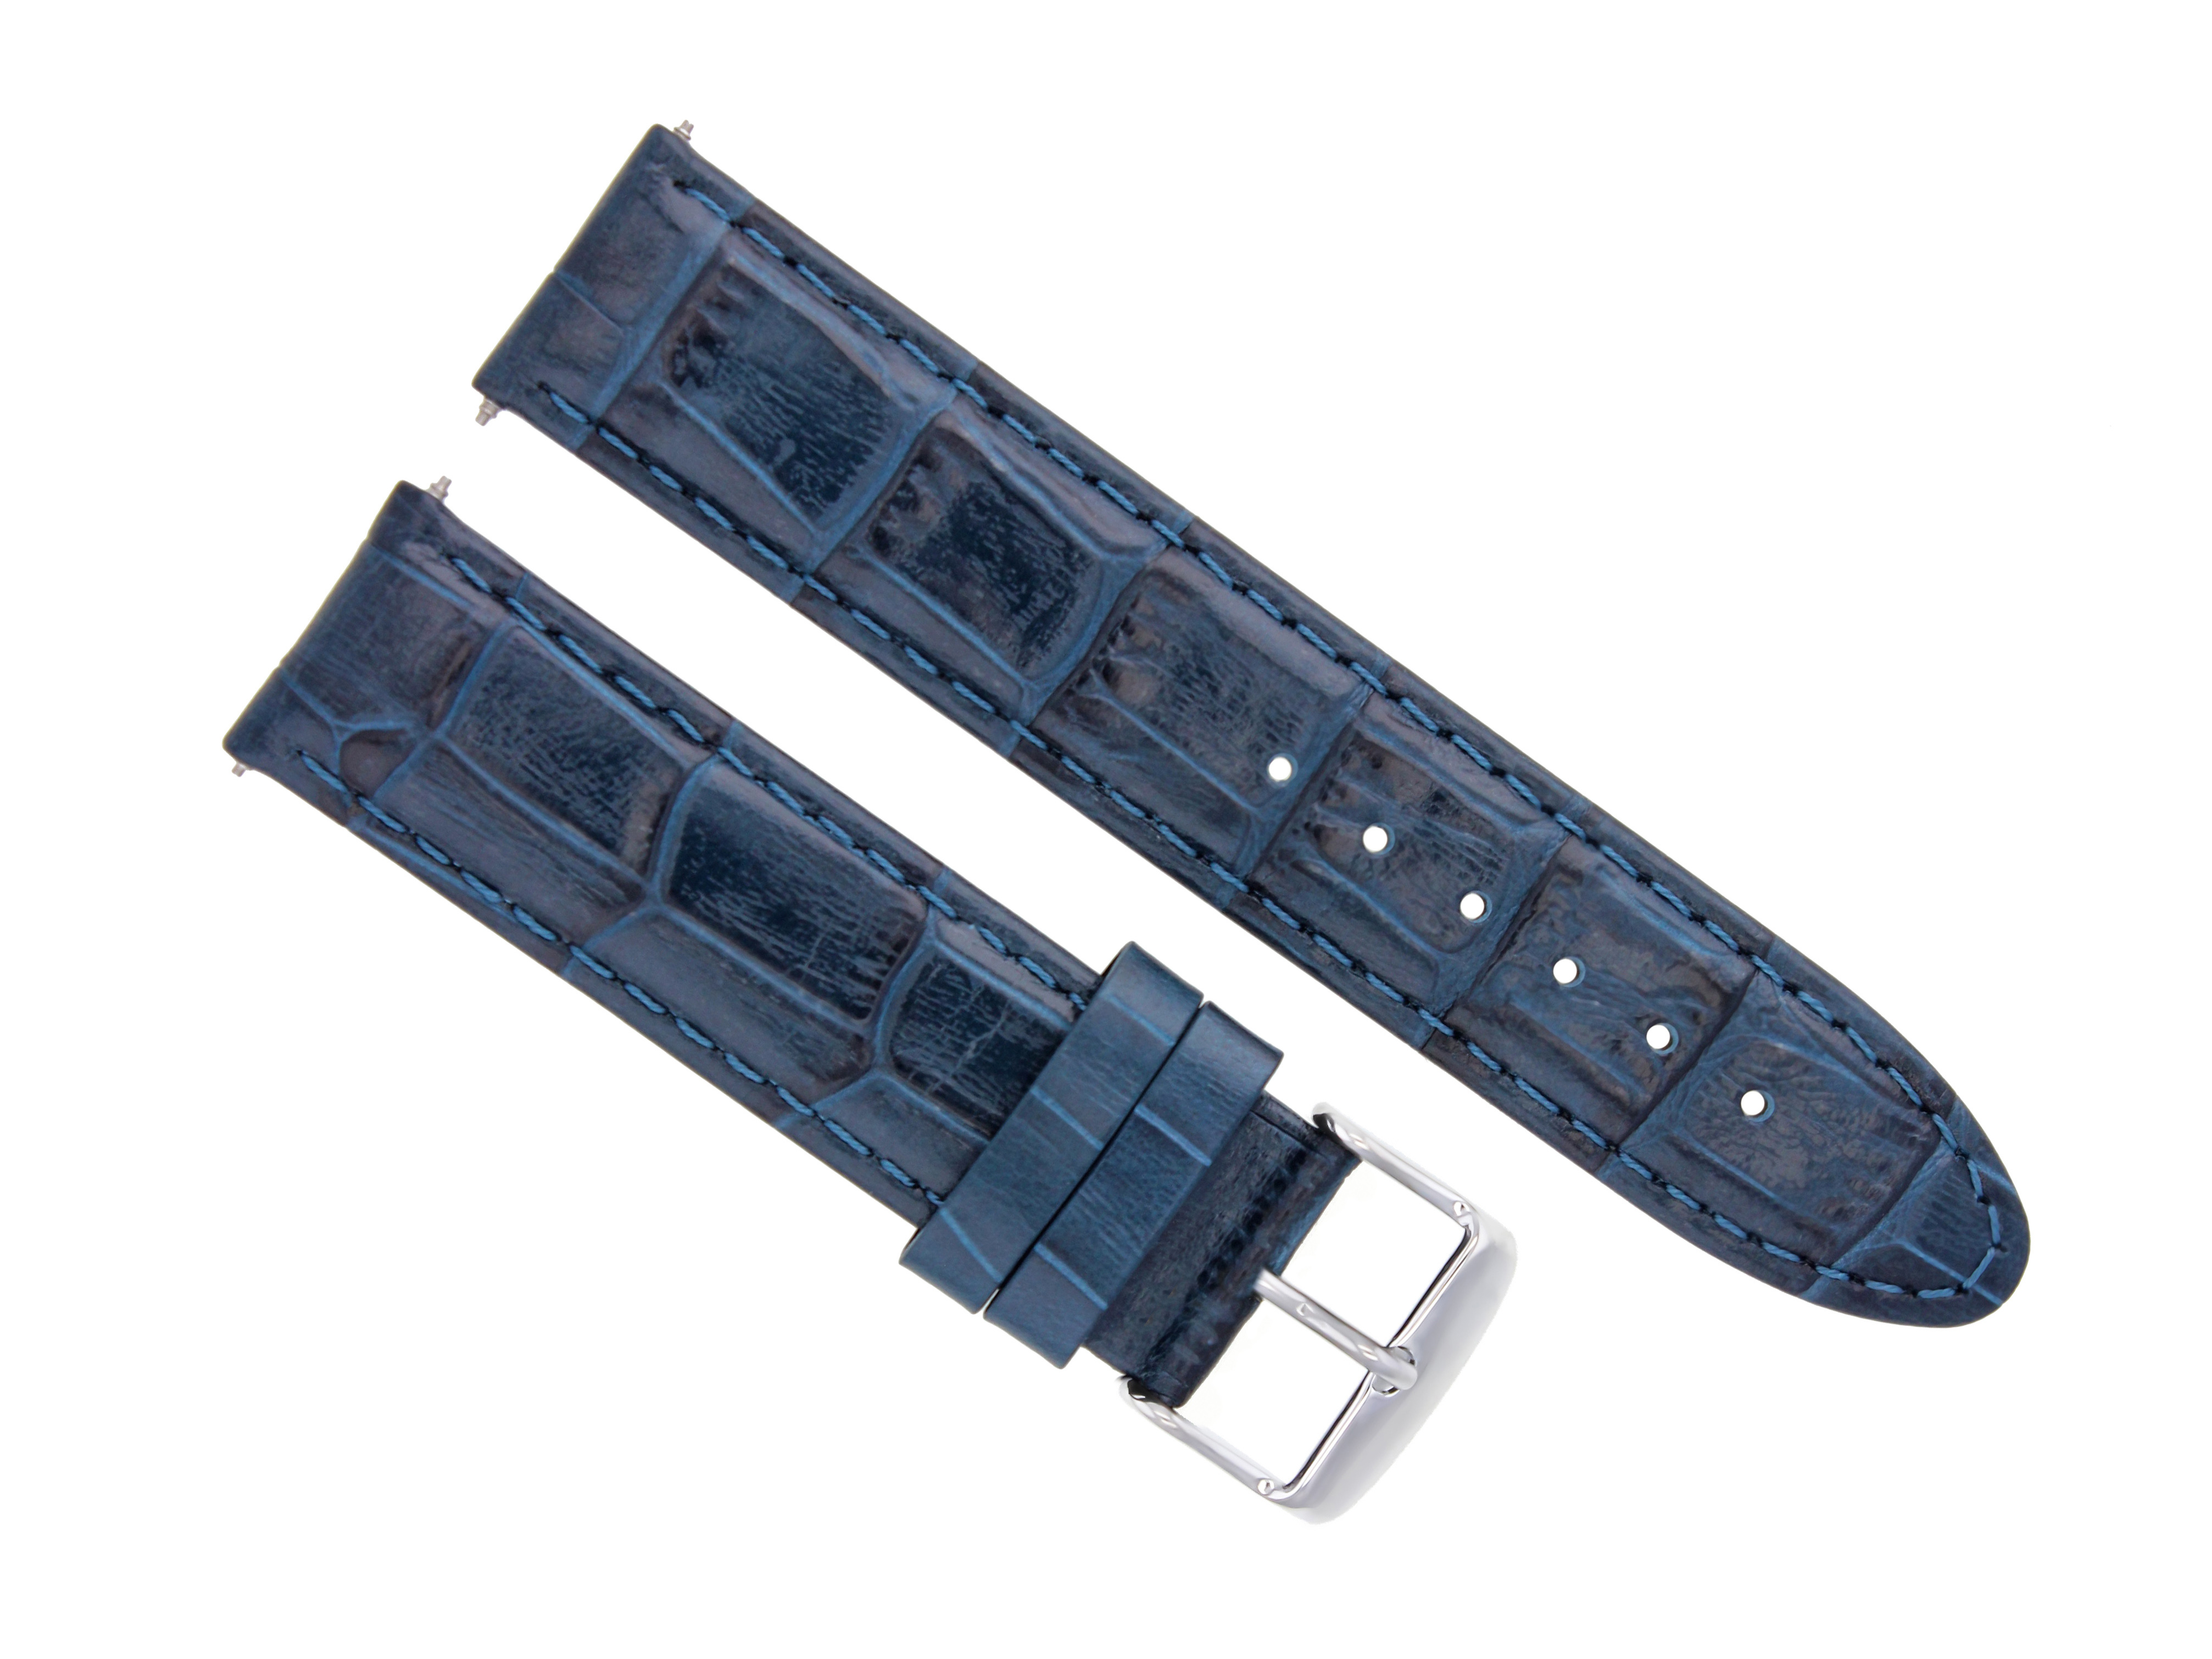 22MM PREMIUM LEATHER WATCH STRAP BAND FOR OMEGA SEAMASTER PLANET OCEAN BLUE